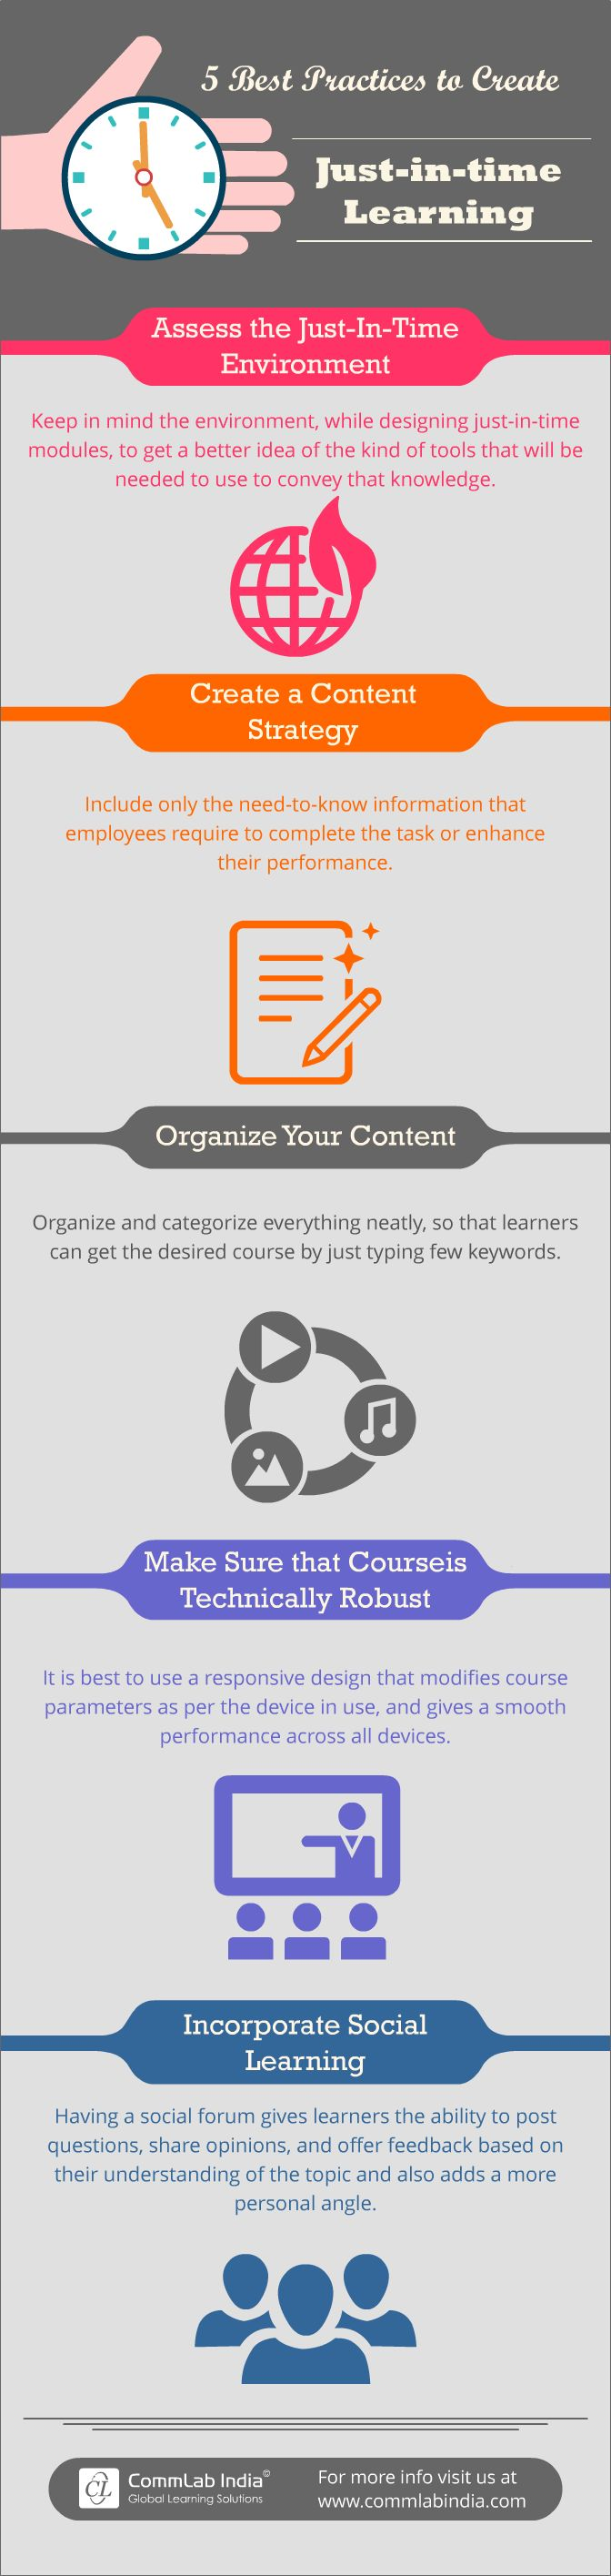 5 Best Practices to Create Just in time Learning